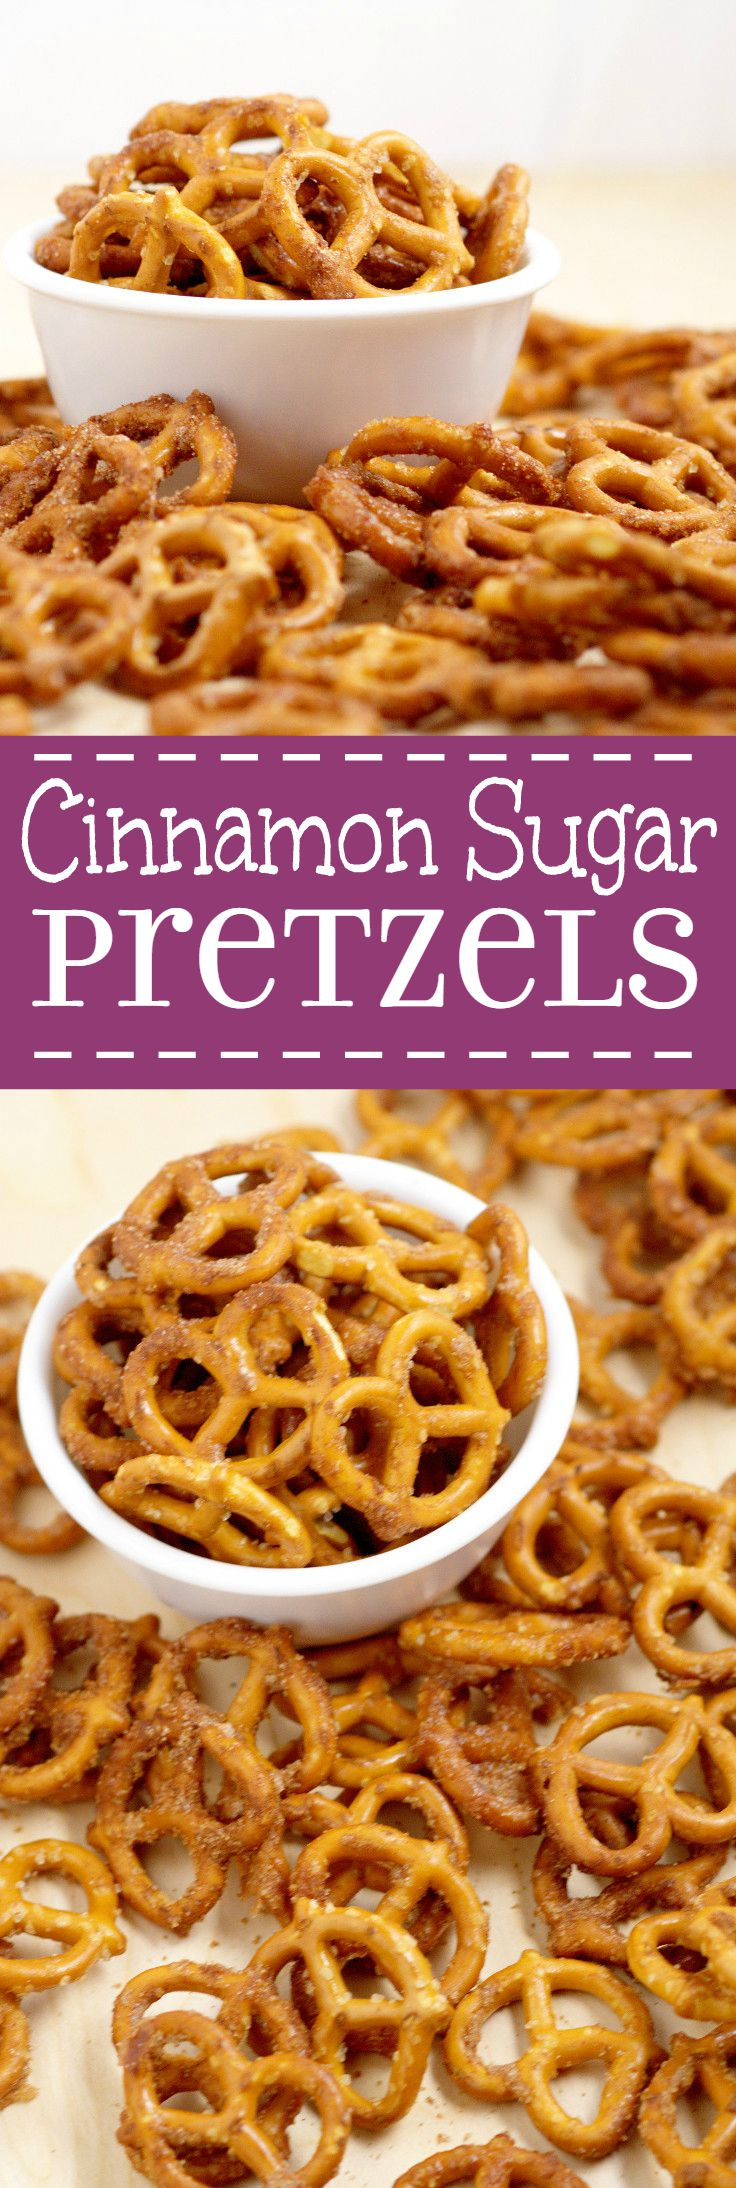 Cinnamon Sugar Pretzels Recipe- salty pretzels baked in butter, cinnamon, and sugar. A super yummy appetizer and snack recipe, great for a party, the holidays, or just because! The perfect combination of sweet and salty!